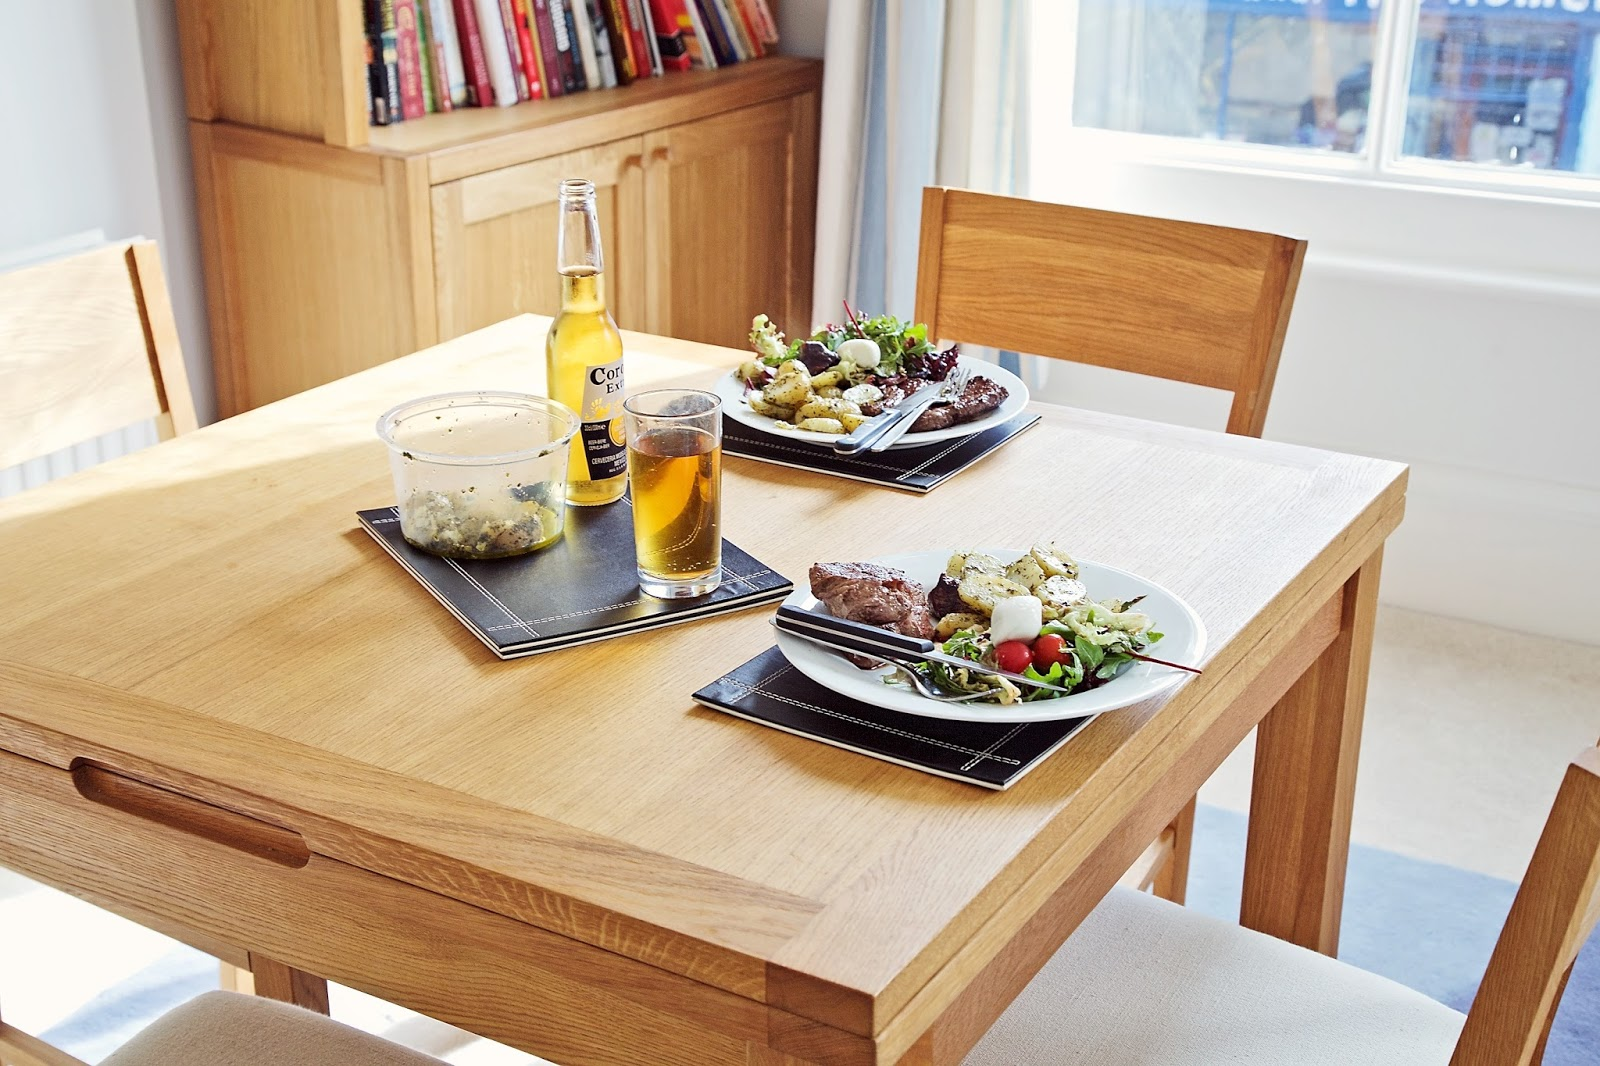 Home made steak and salad served on a dining table